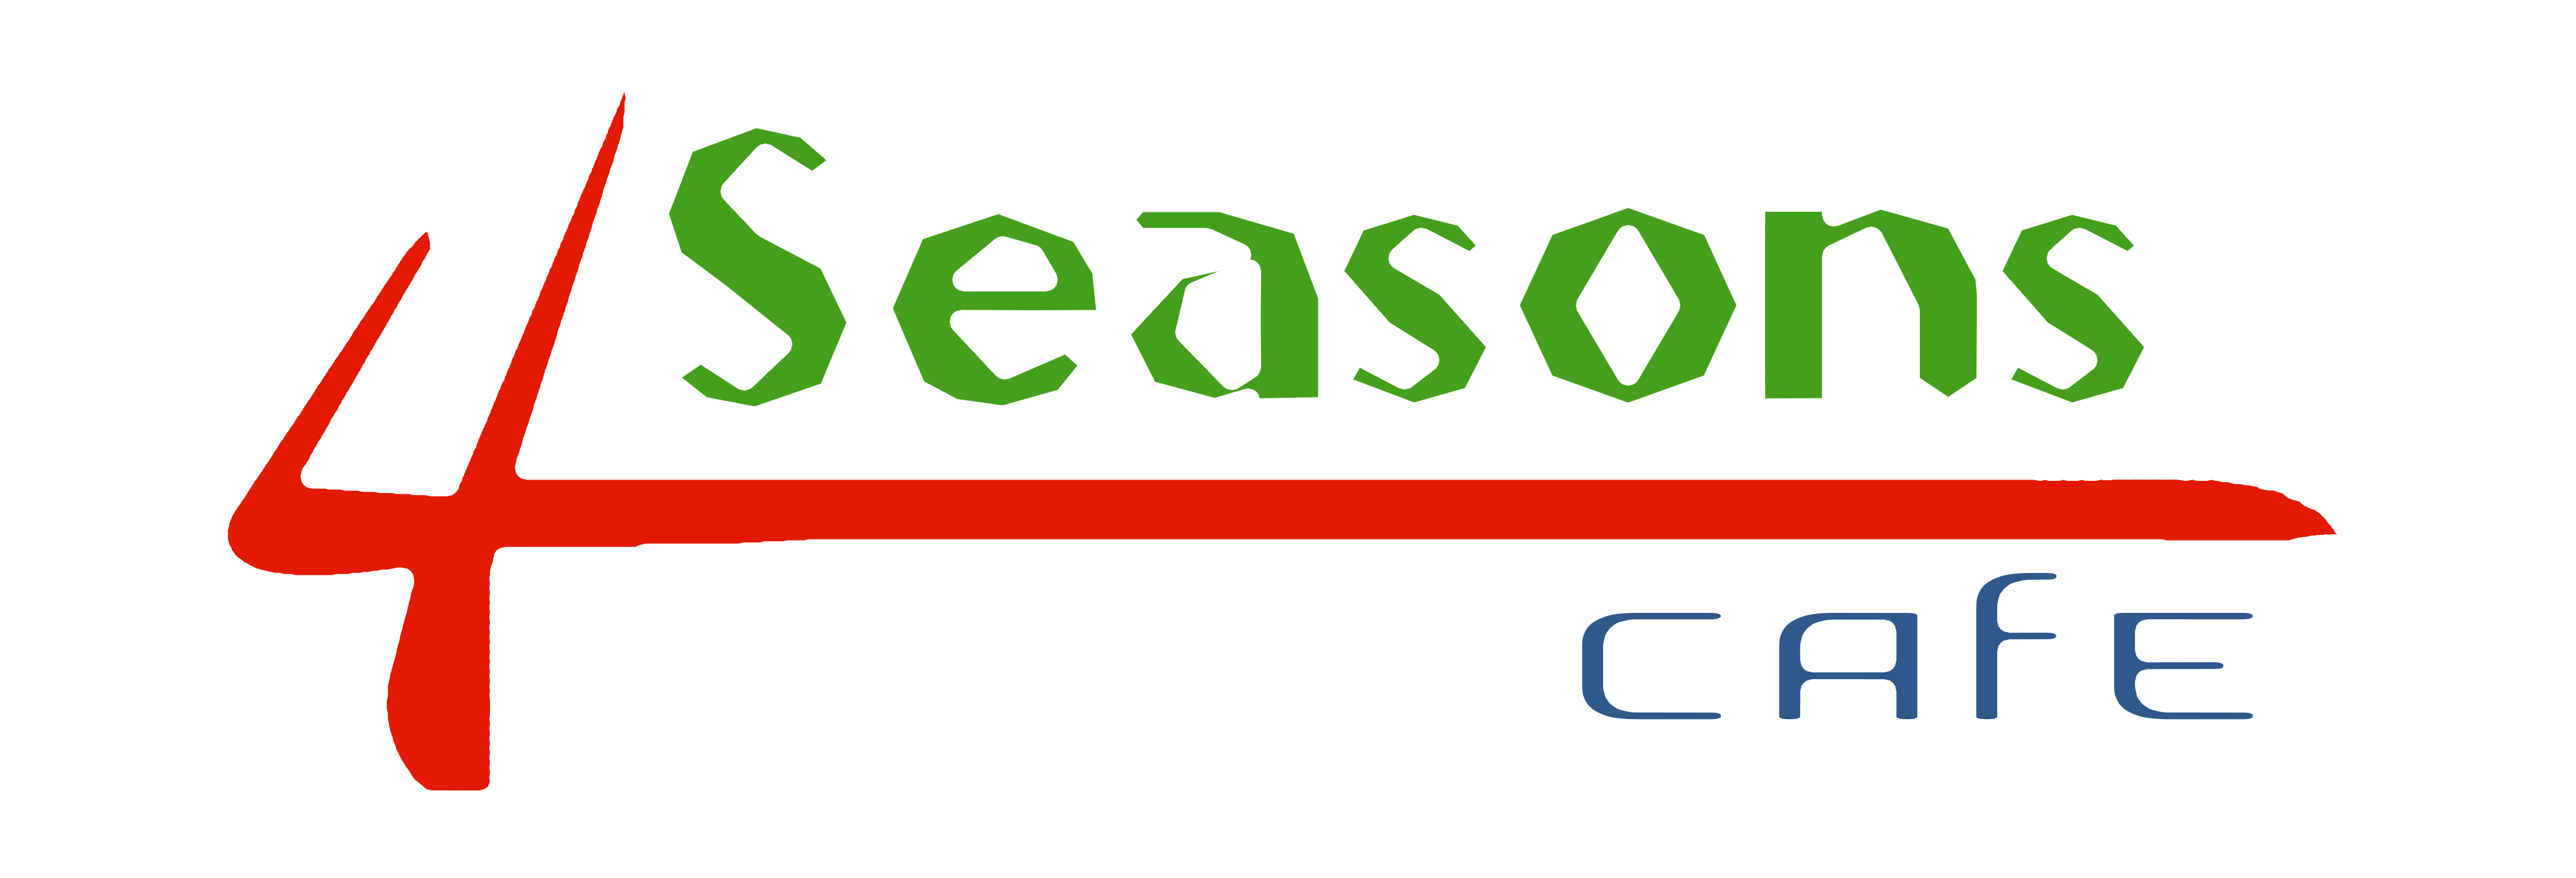 4 Seasons Cafe